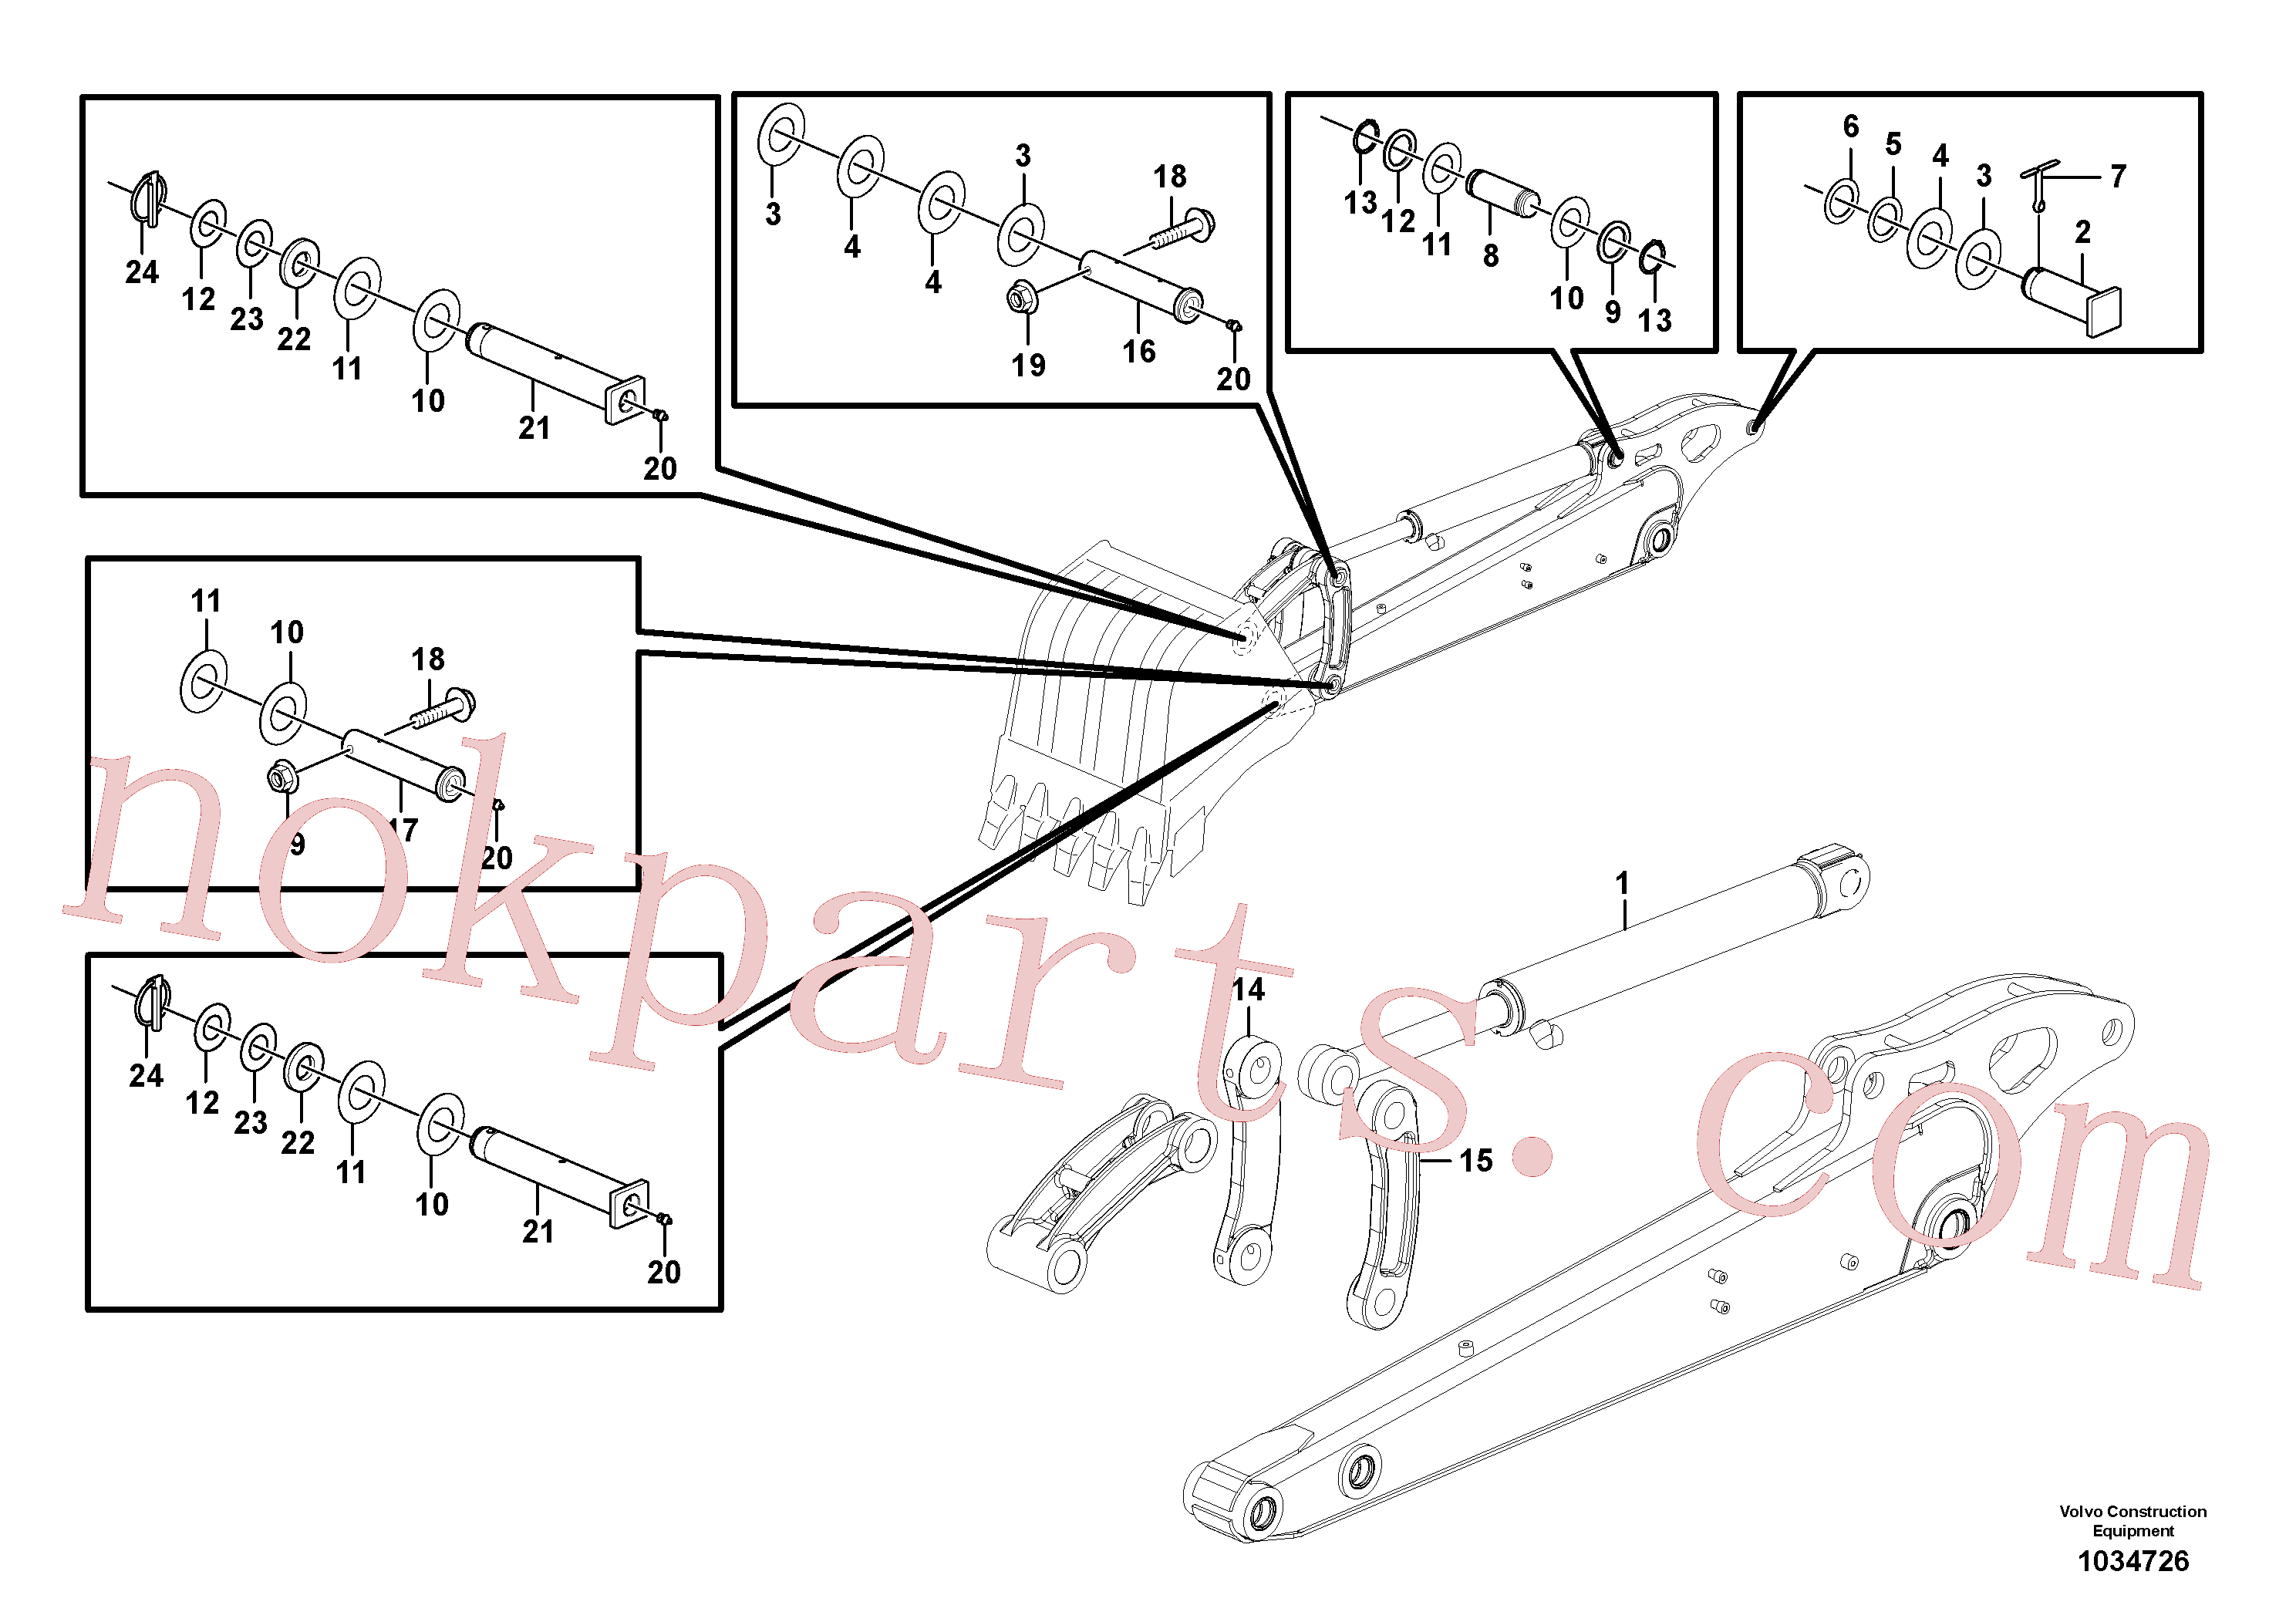 PJ5540111 for Volvo Dipper arm(1034726 assembly)